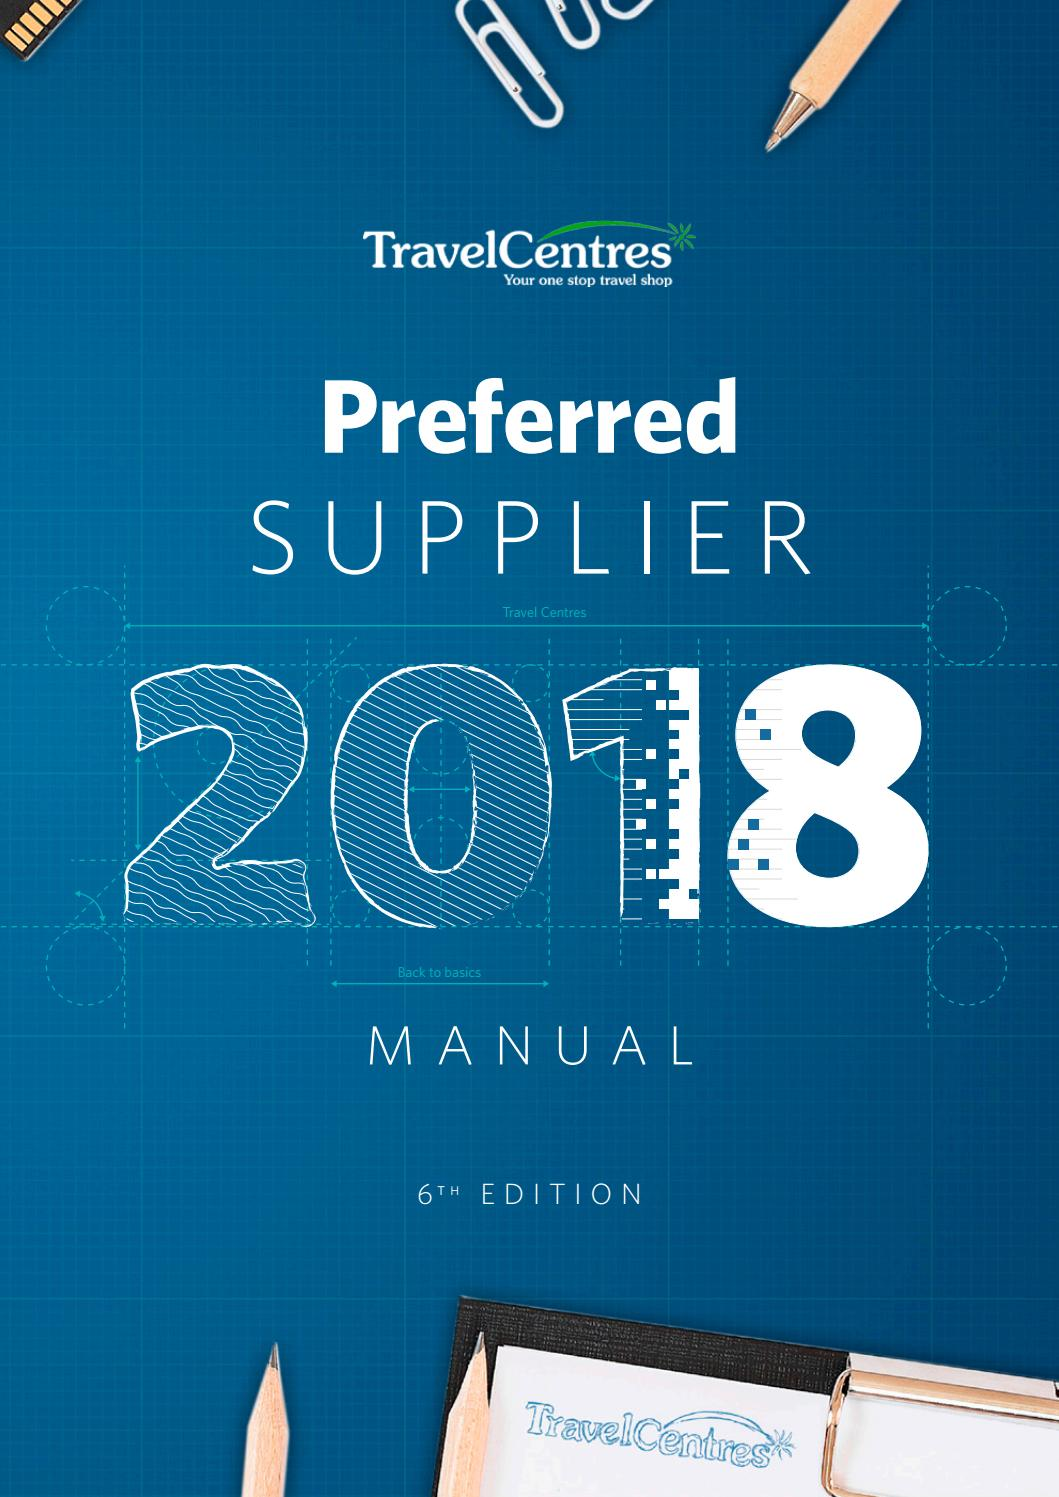 Travel Centres Preferred Supplier Manual 2018 by Travel